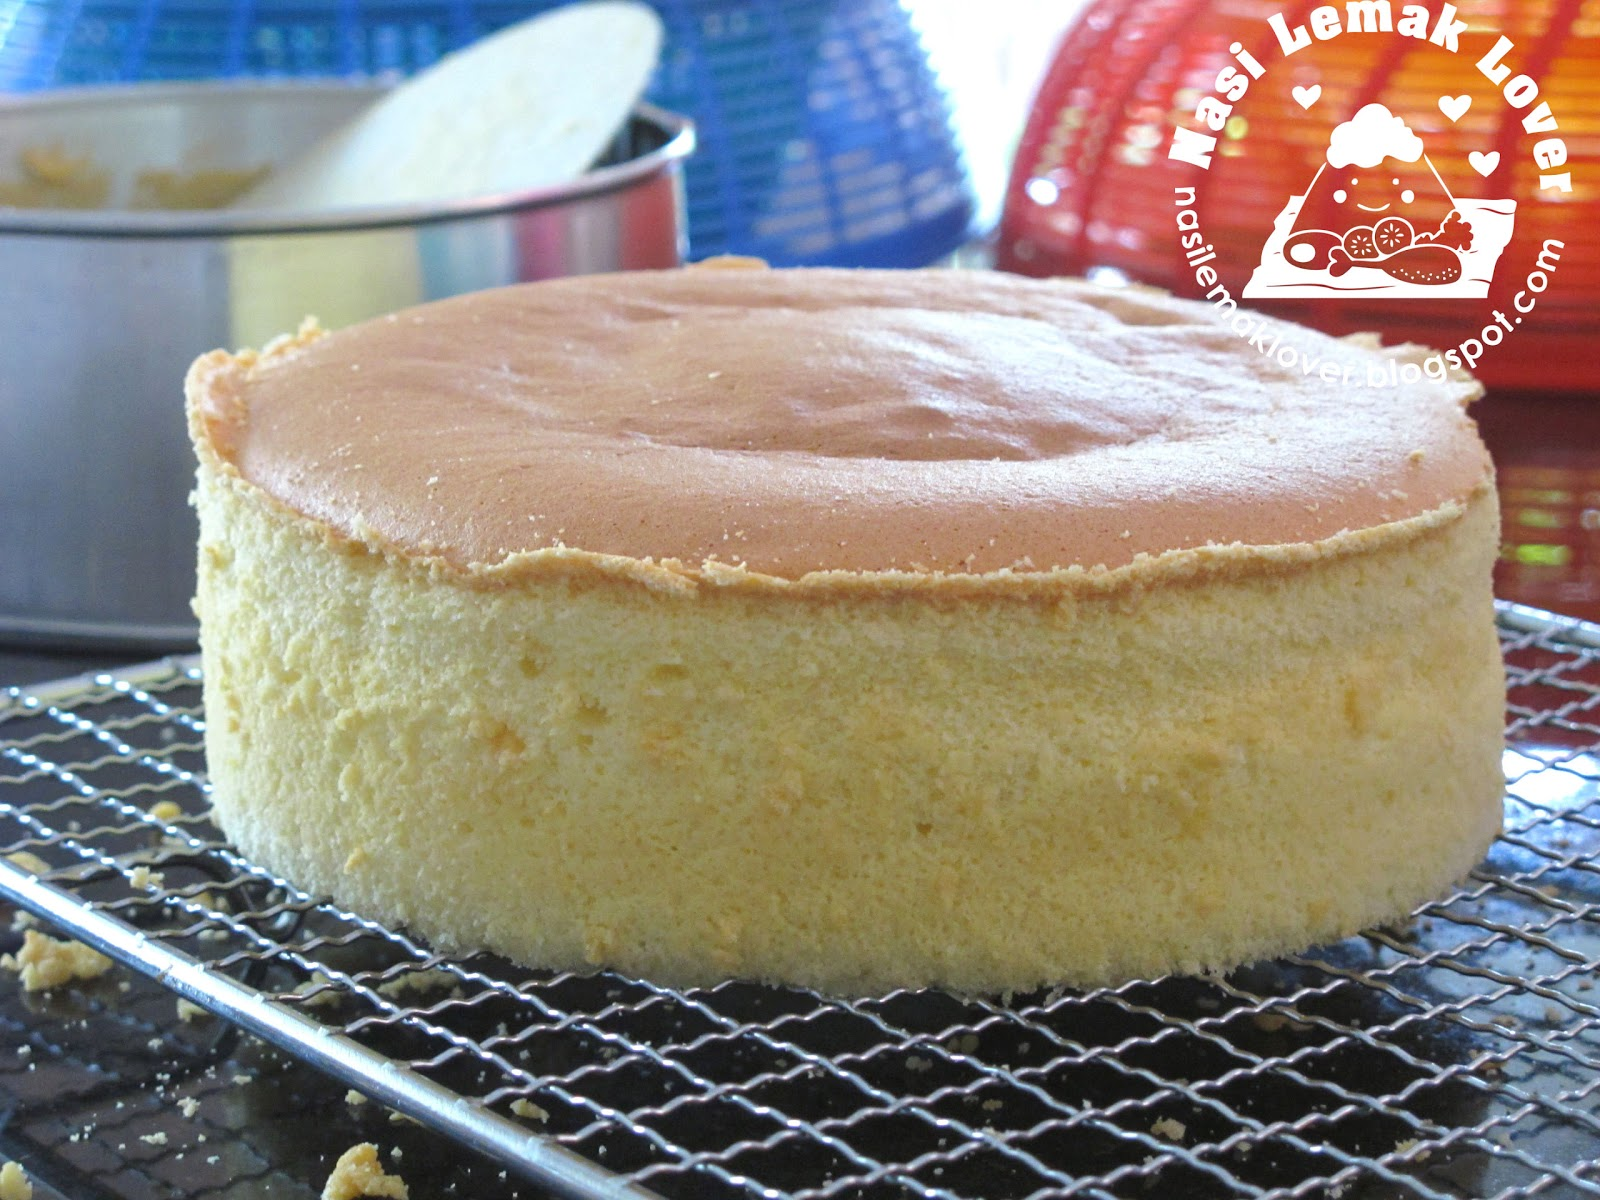 Sponge Cake Recipe Using Vegetable Oil